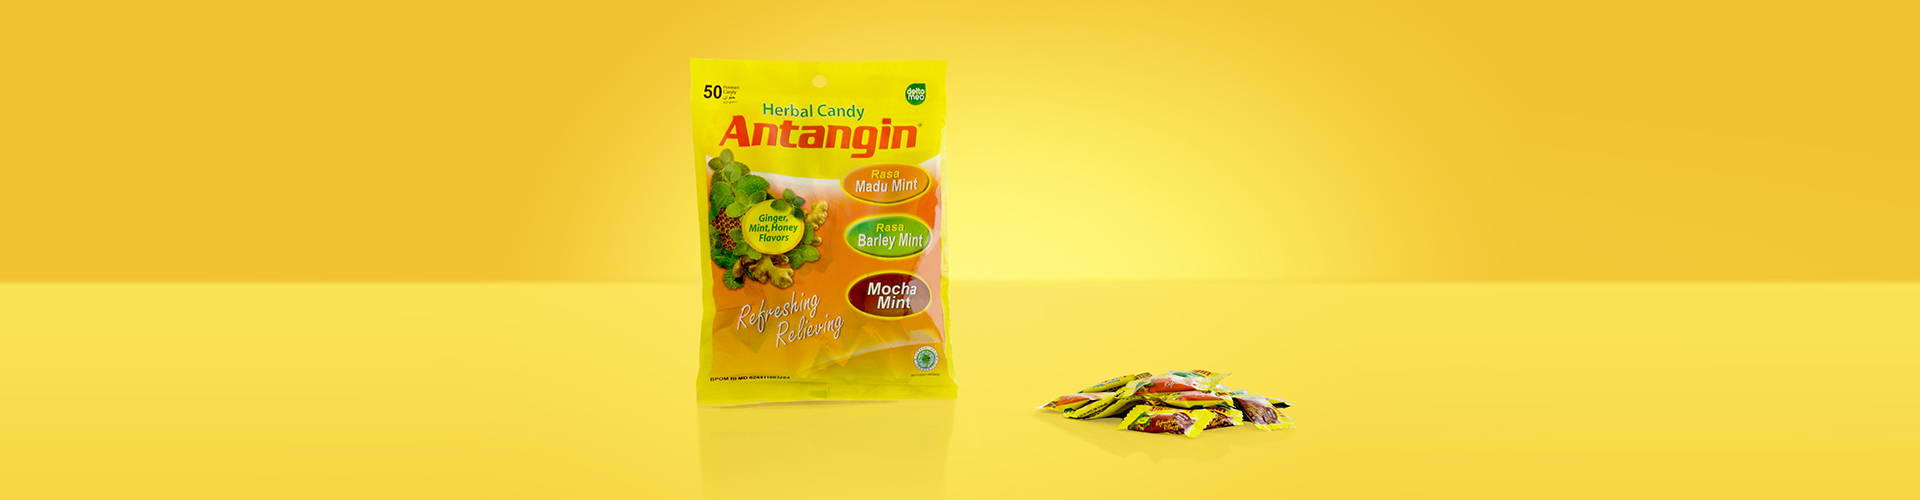 Antangin Herbal Candy